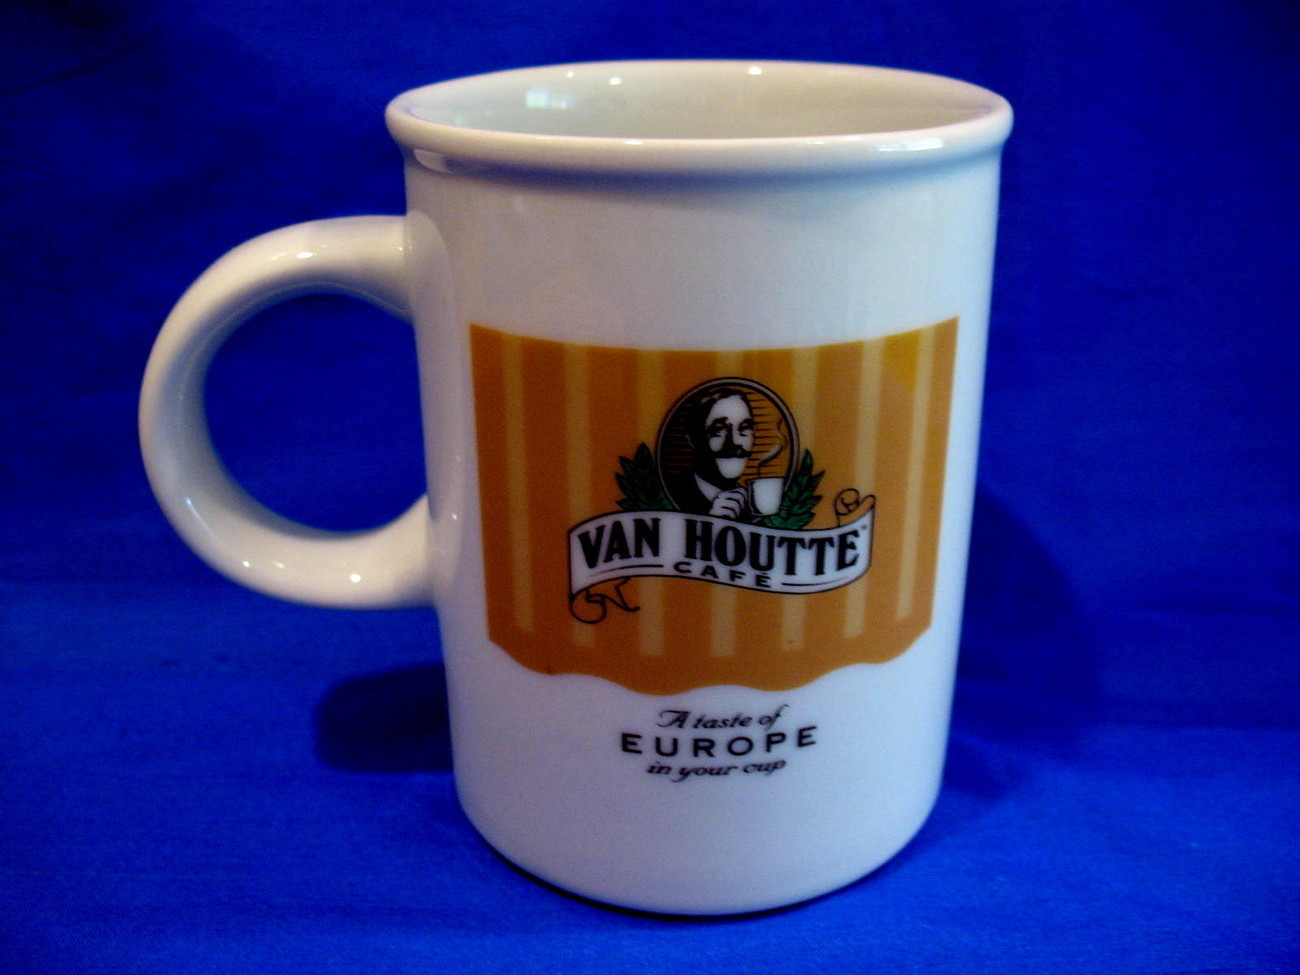 Primary image for Van Houtte Cafe Coffee Mug Tea Cup A Taste of Europe Souvenir Collectible